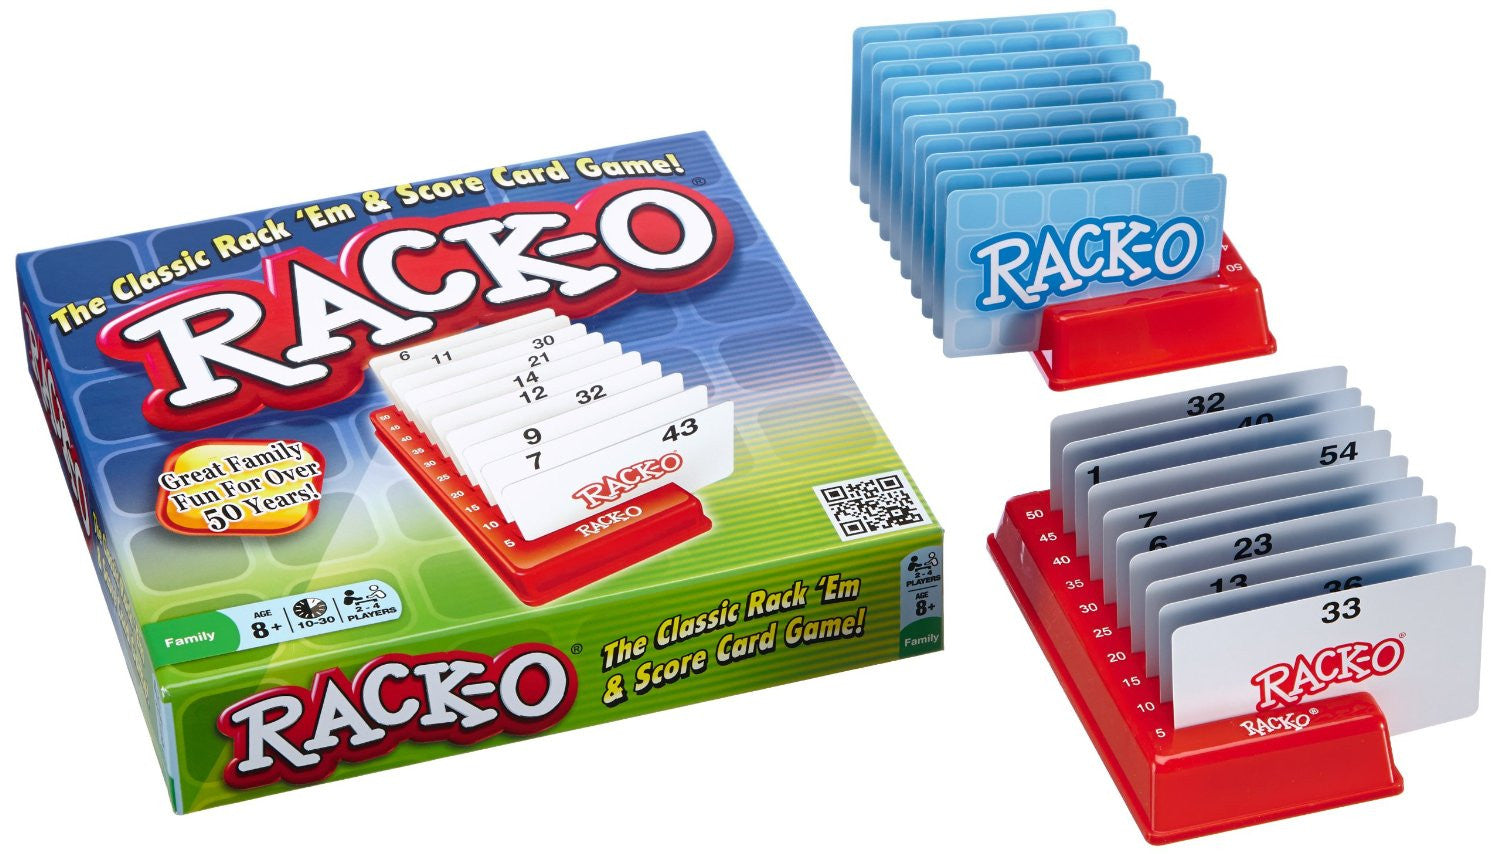 Rack-O-Winning Moves